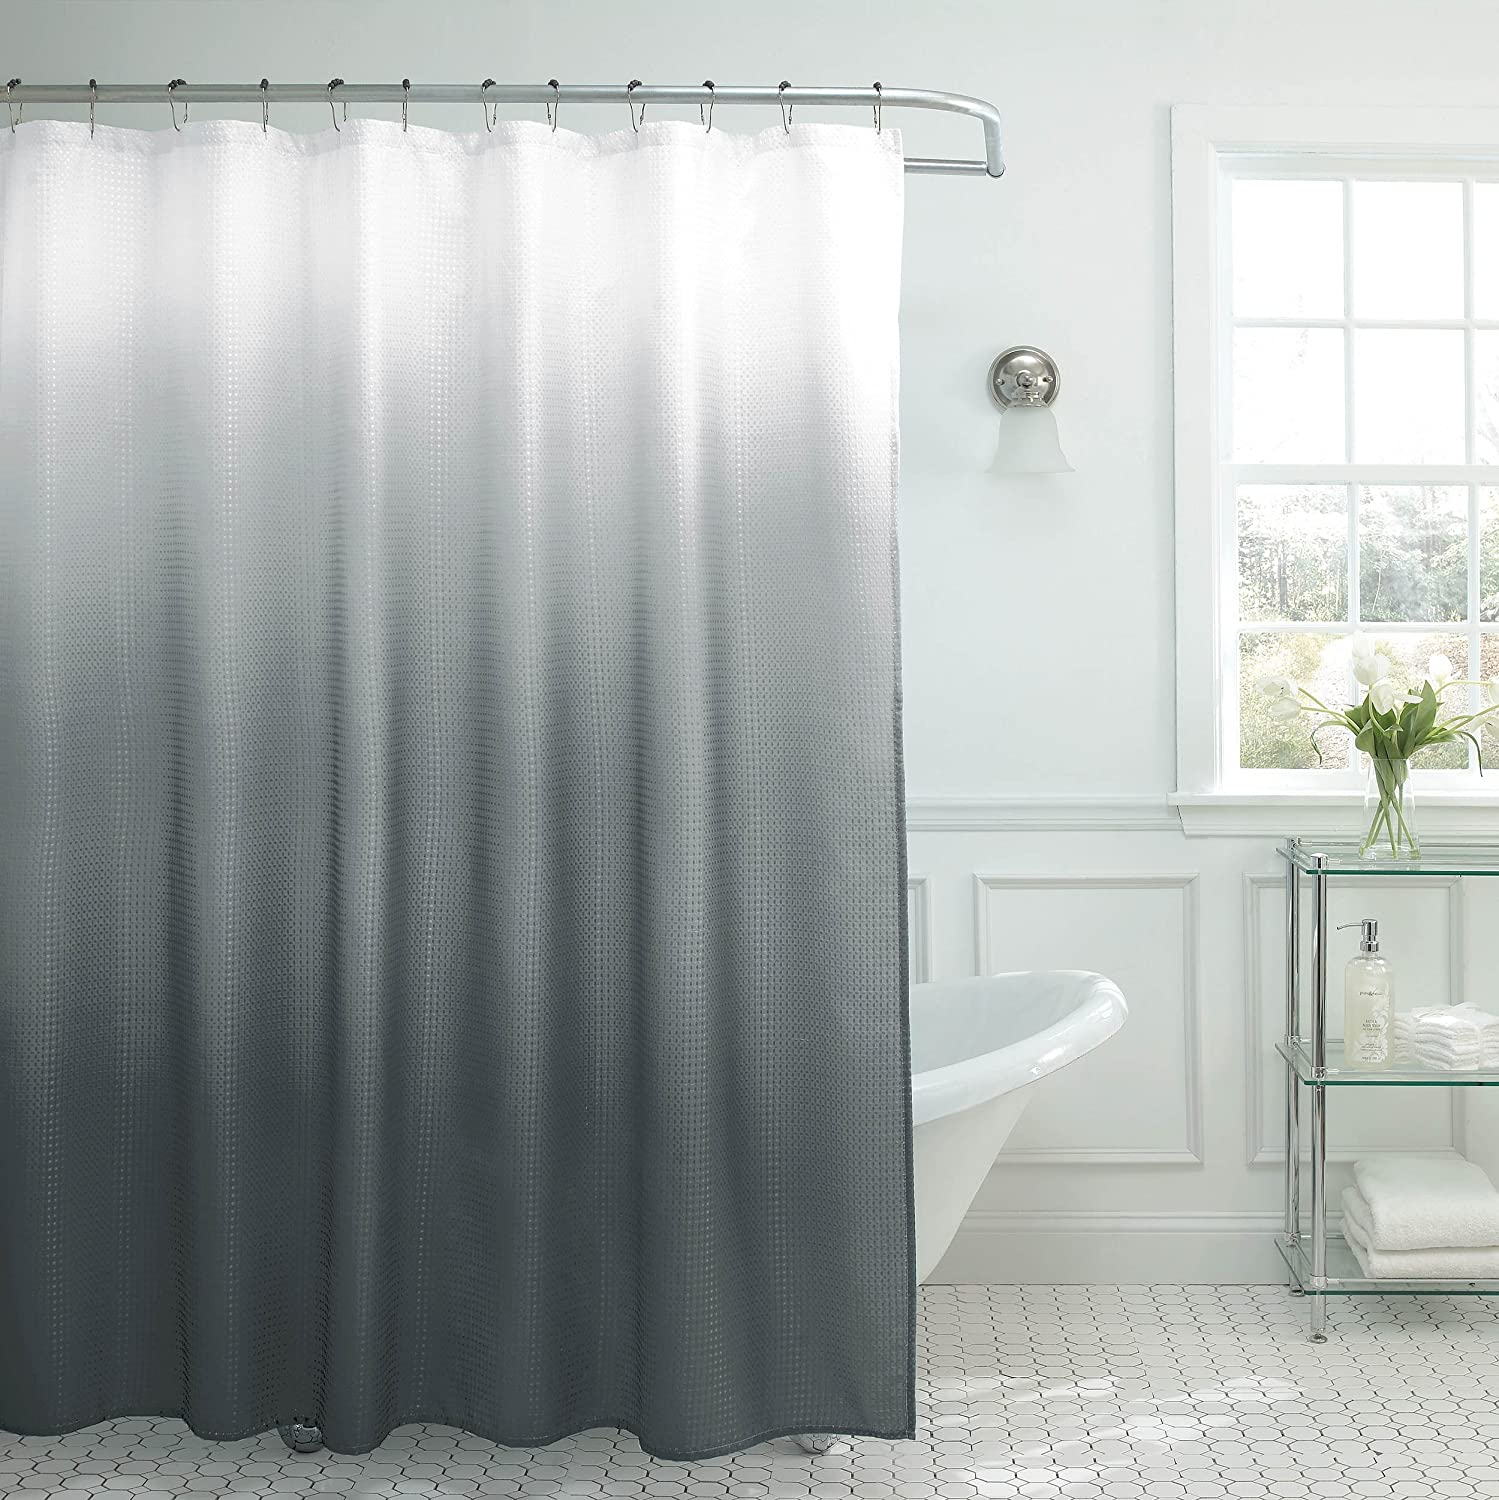 Amazon.com: Creative Home Ideas Ombre Textured Shower Curtain With Beaded Rings, Dark Grey: Home & Kitchen